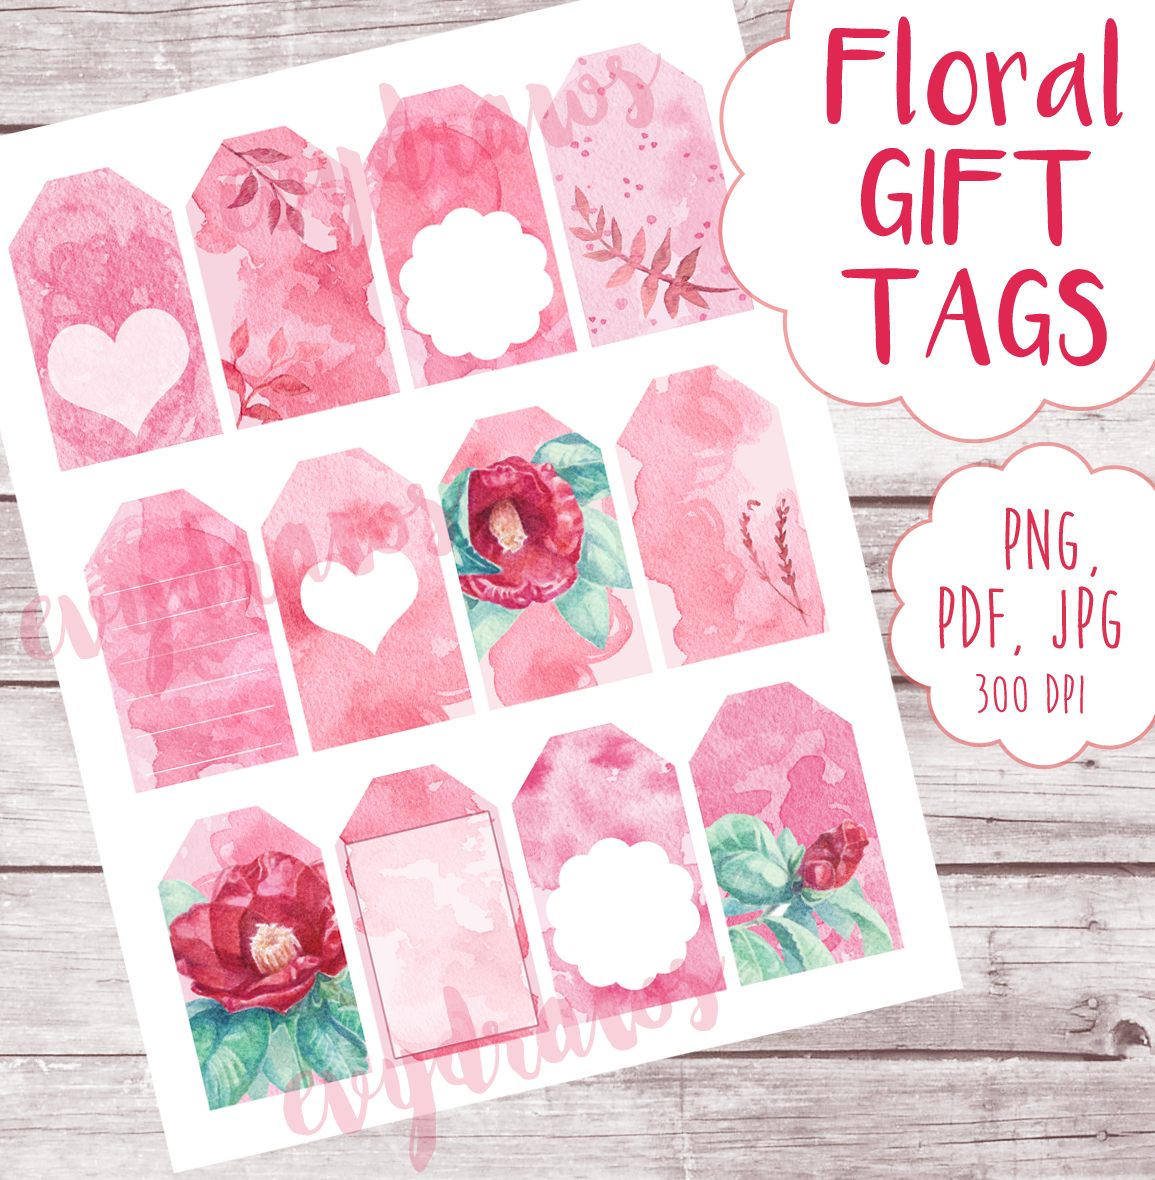 FREE printable gift tags perfect for Valentine's Day! Watercolor flower illustrations (Camellia) and cute watercolor patterns created by hand, then turned into a digital download. Use them to decorate your anniversary or Valentine's Day gifts!